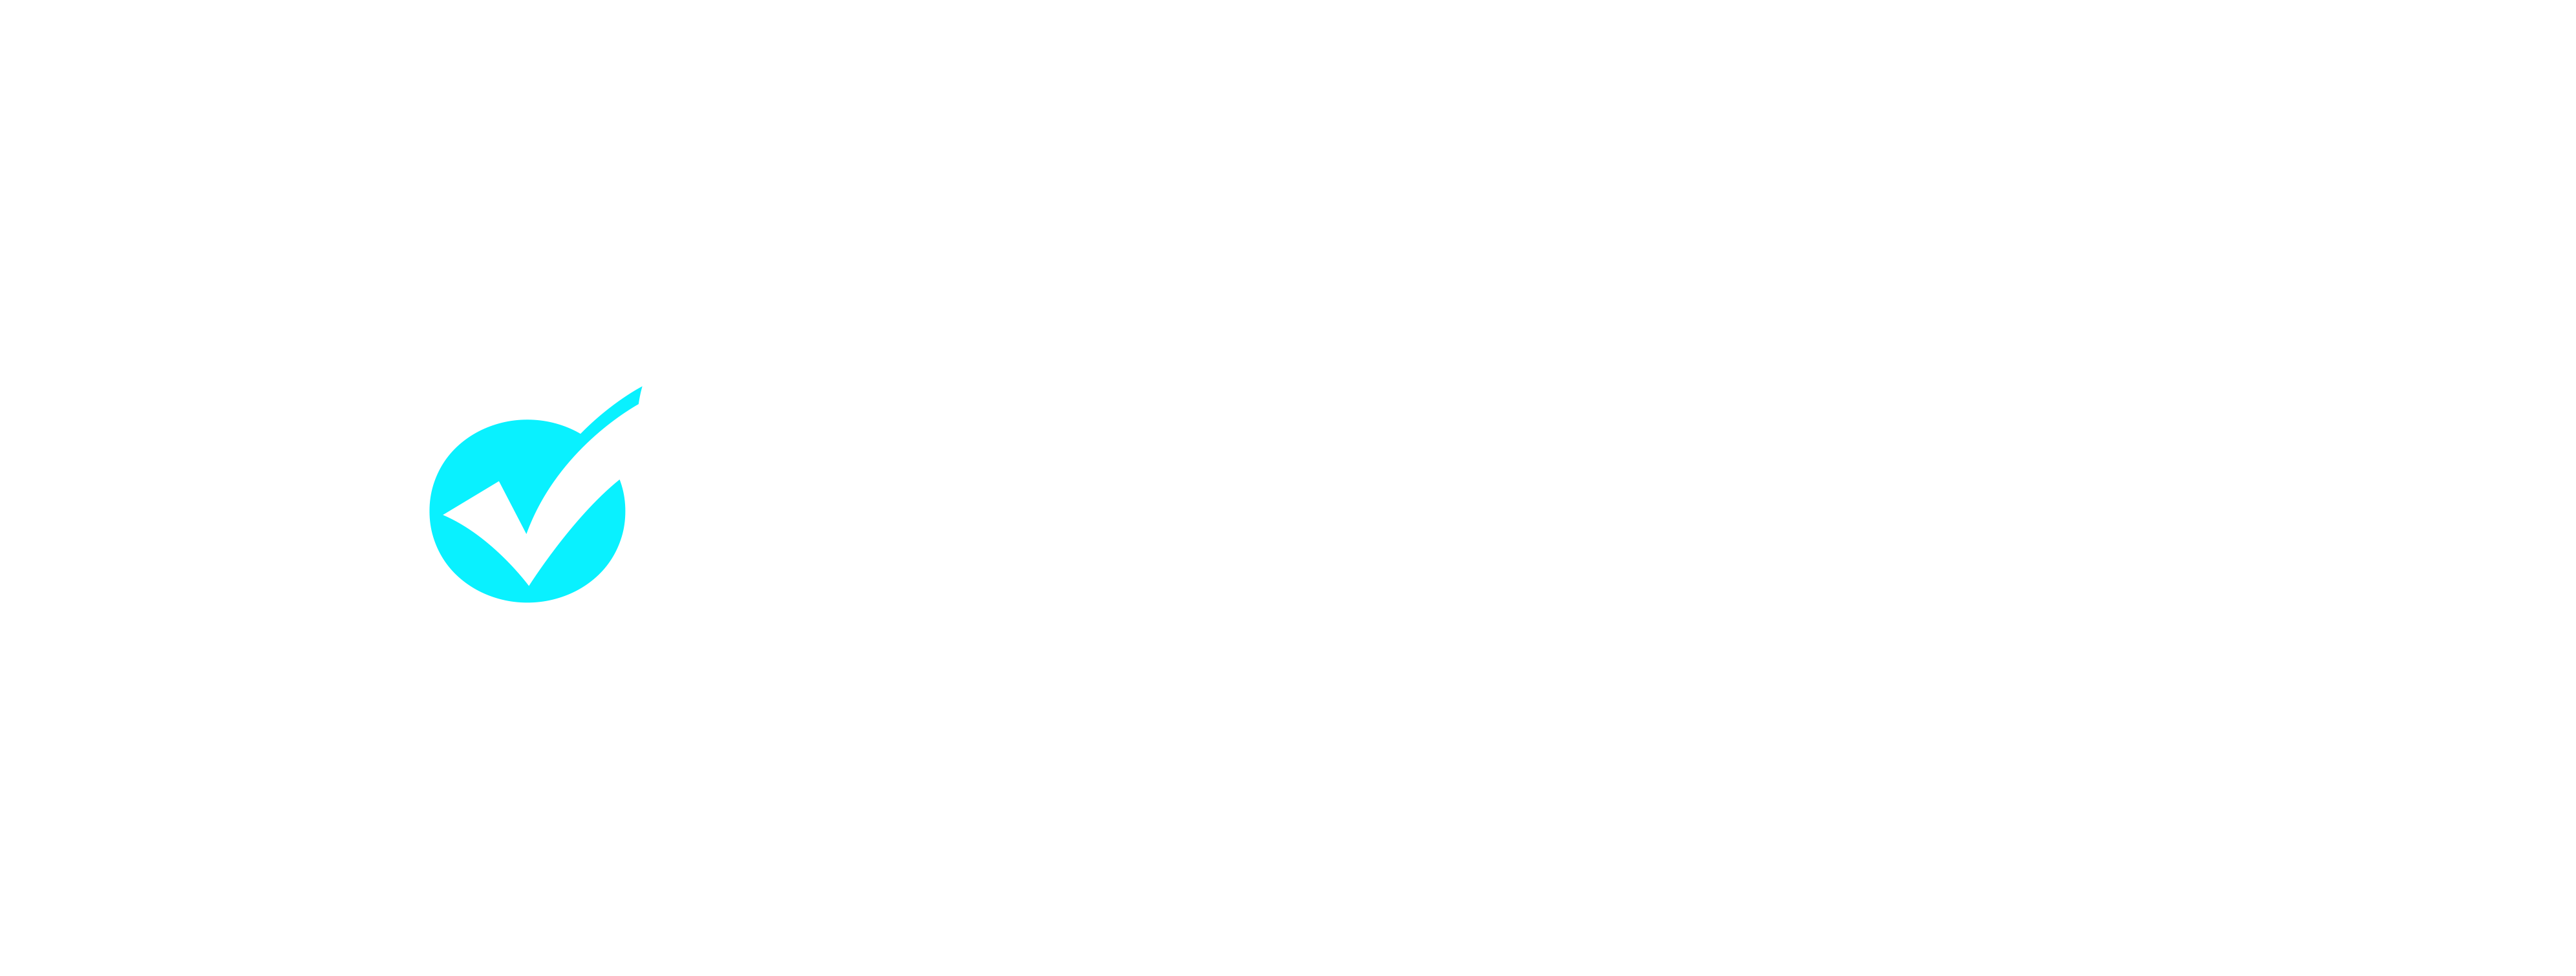 cropped-5000x5000-white-letters-no-boarded-check-mark.png